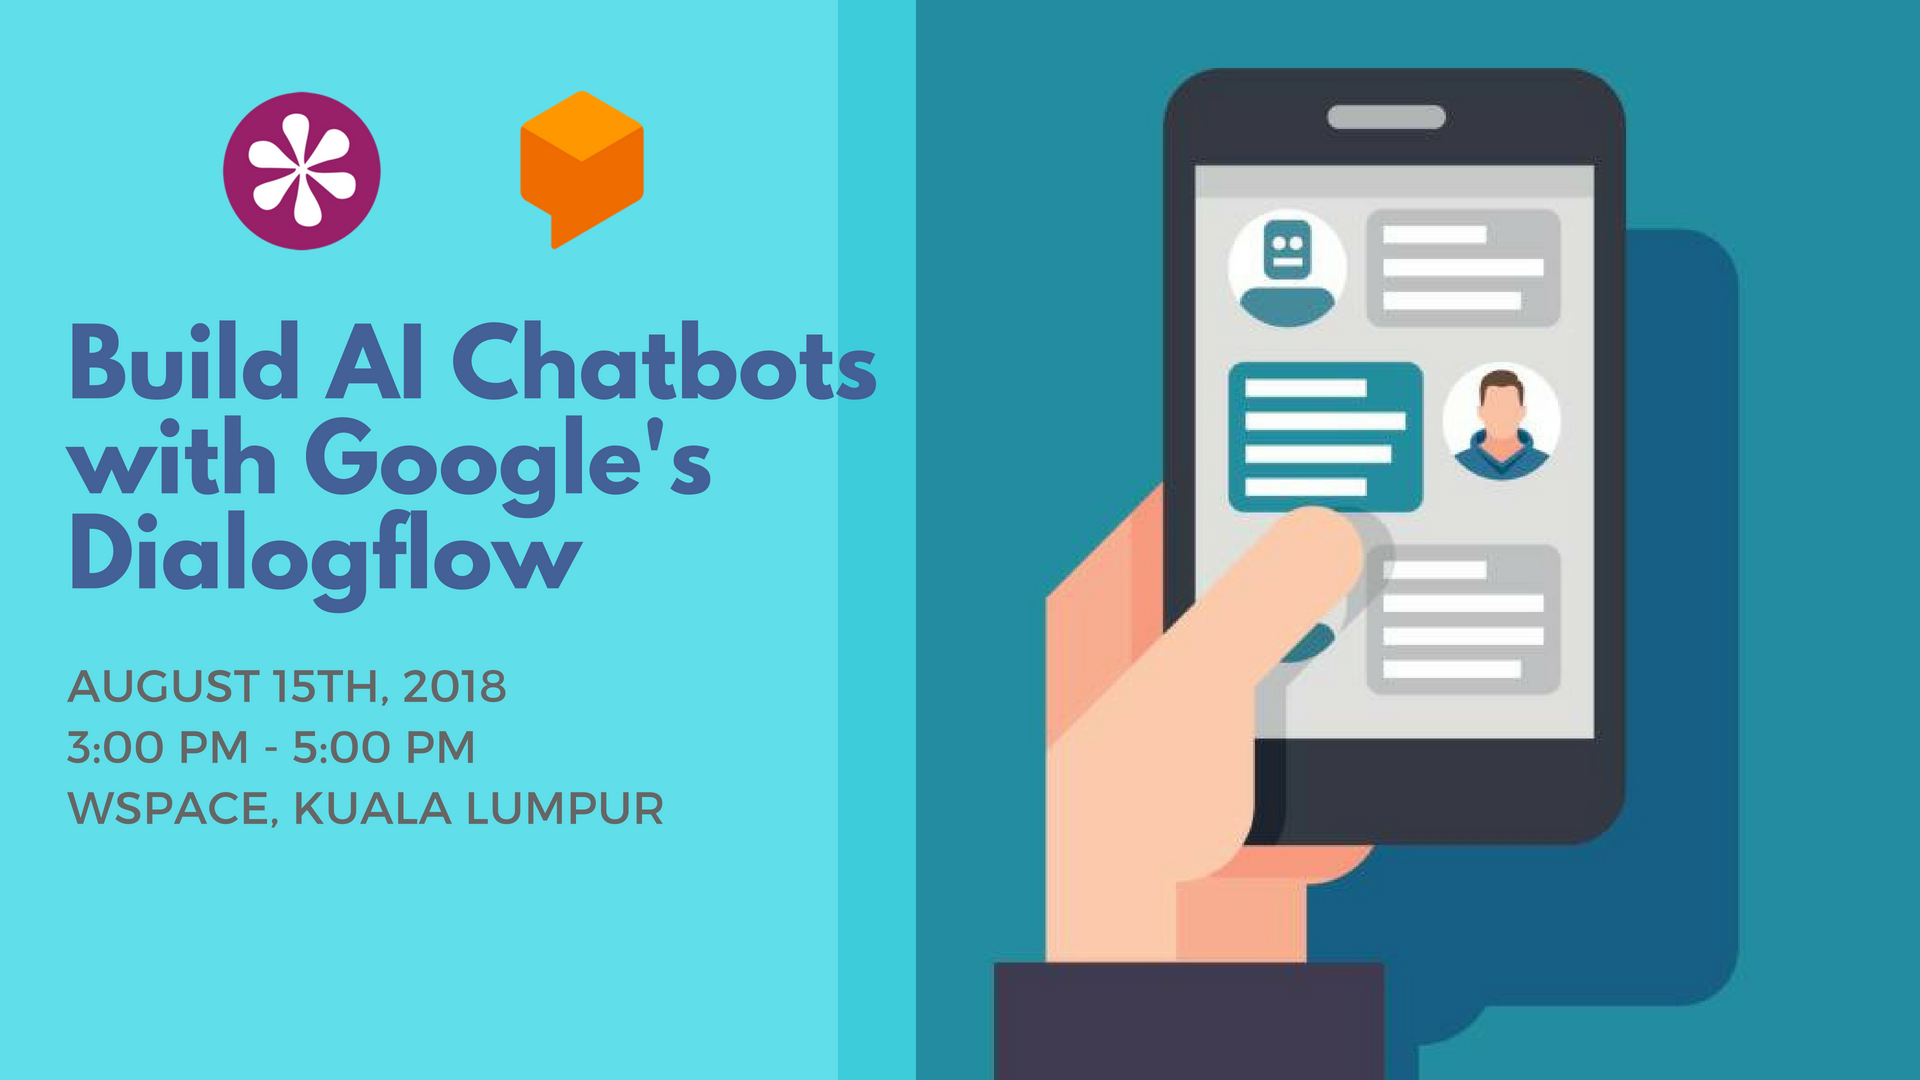 2 Webpage Build AI Chatbots with Google's Dialog flow MY.png